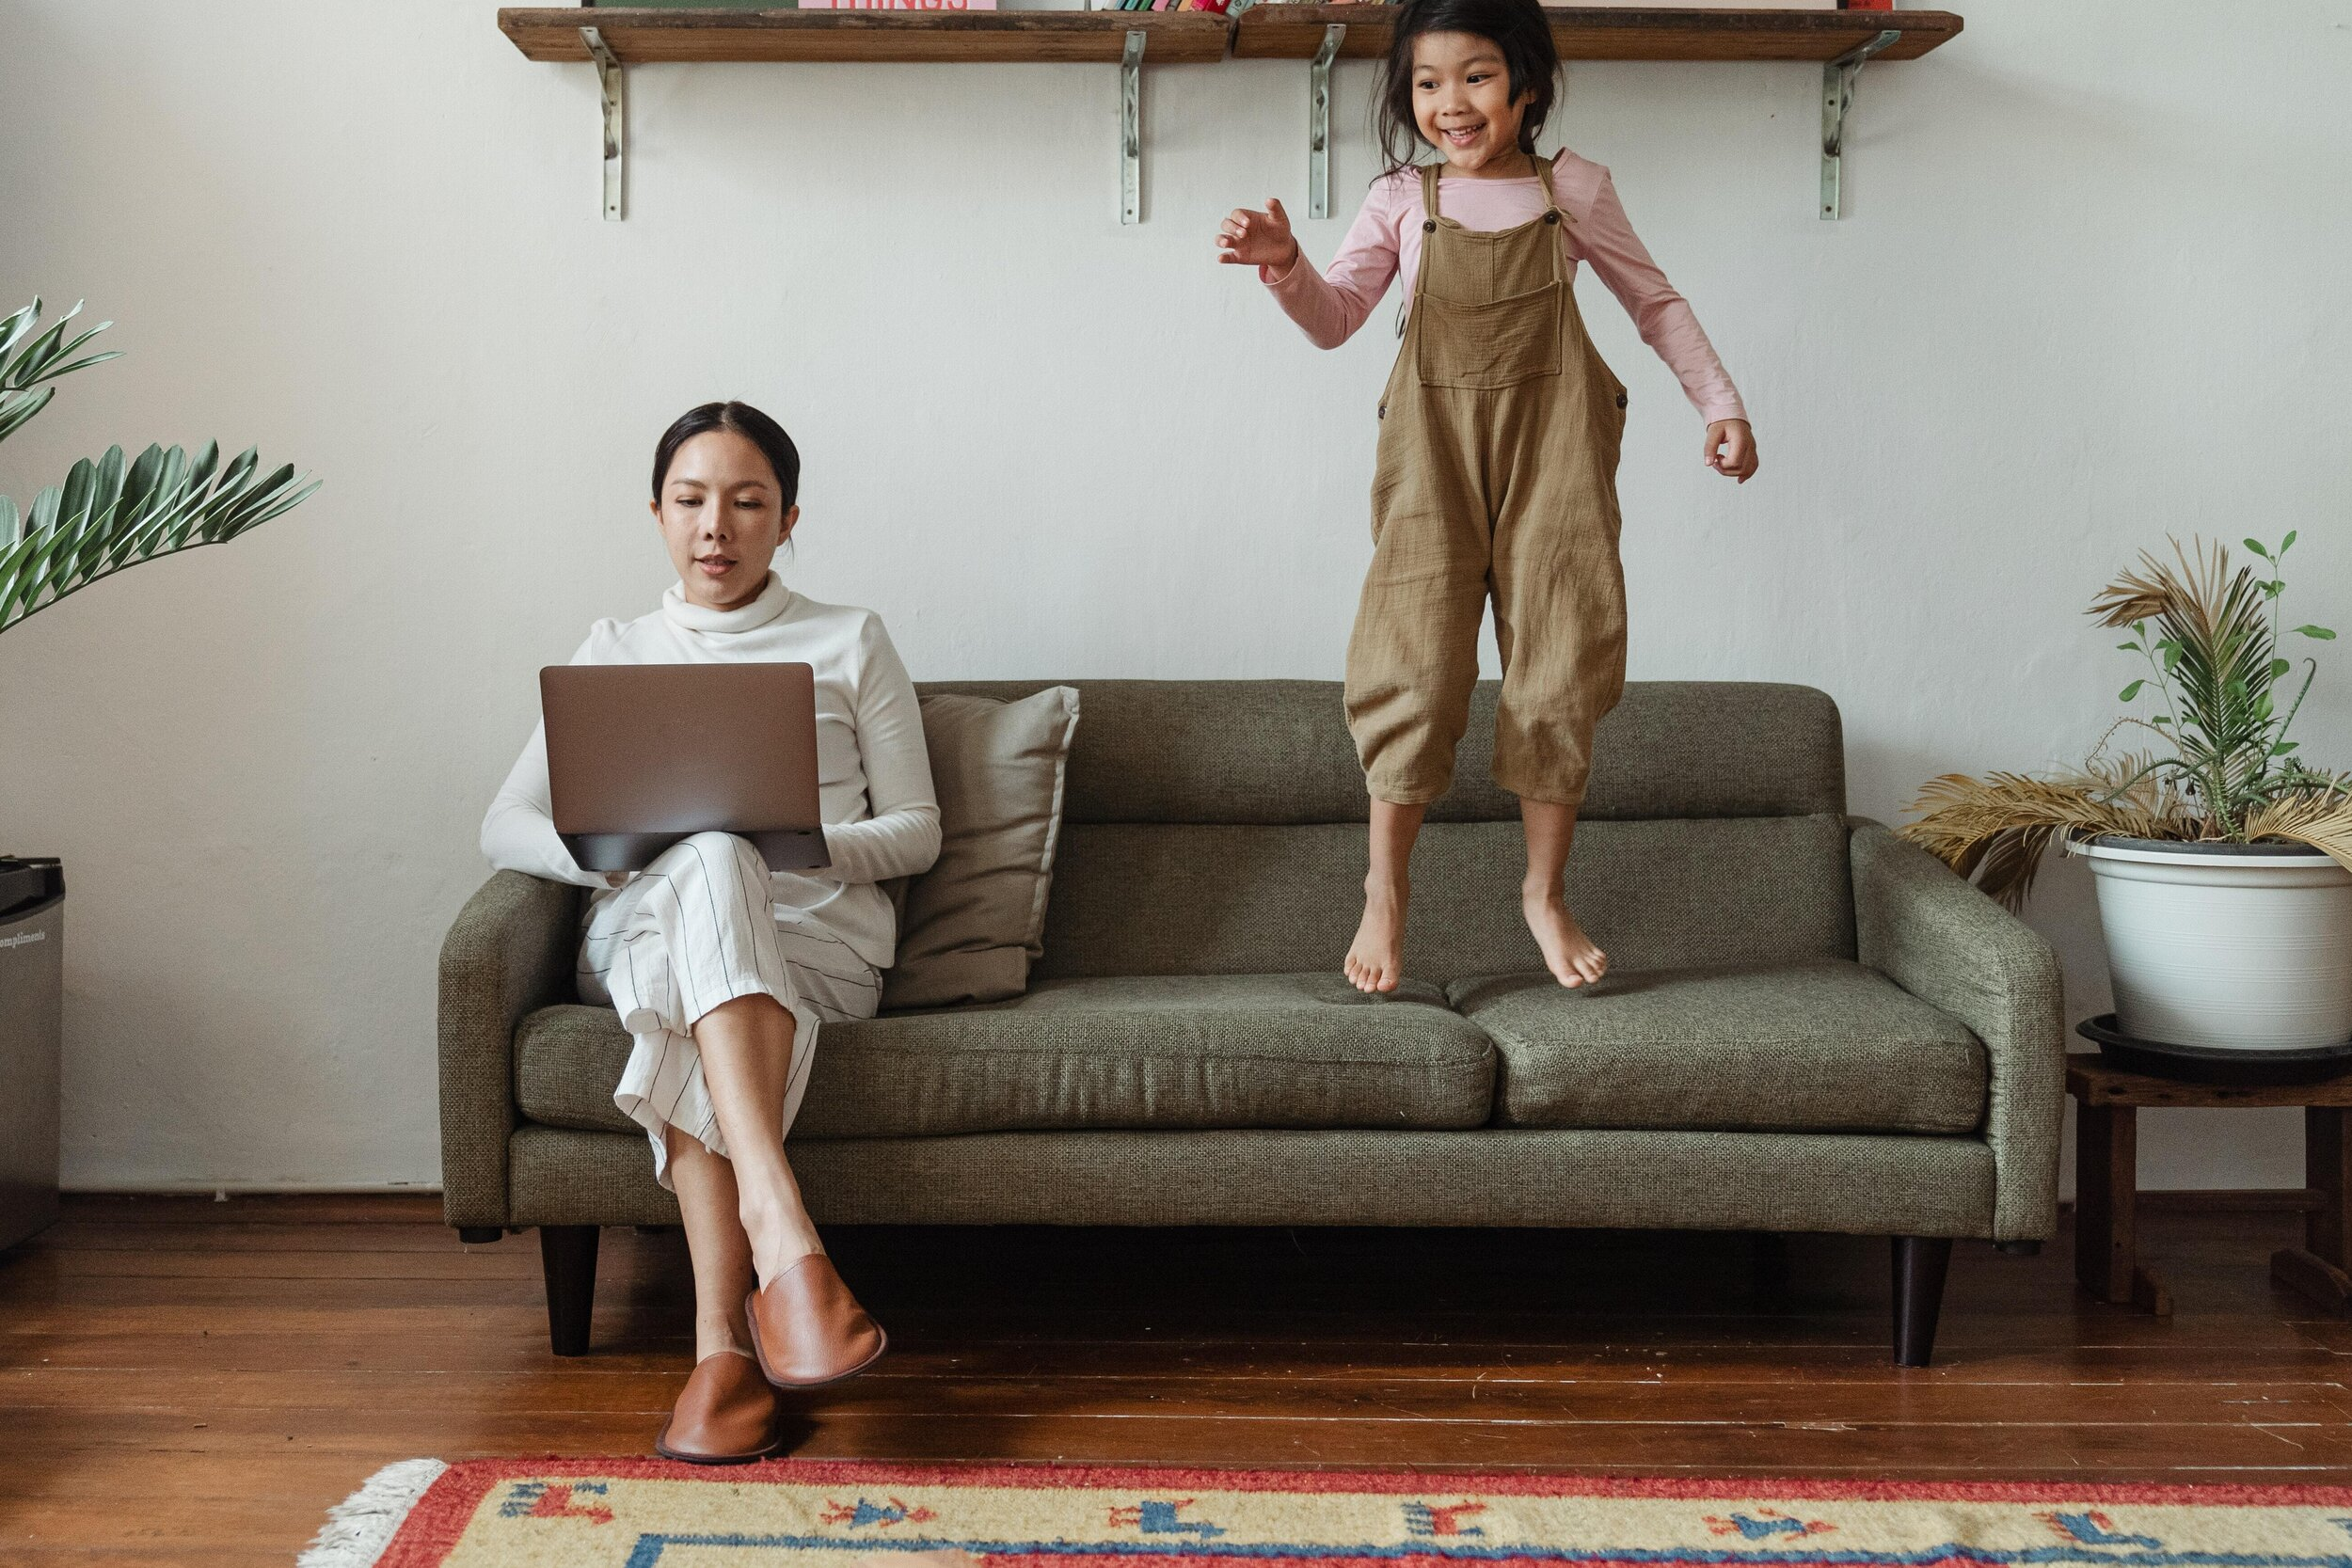 woman working on lounge with laptop, while daughter jumps on lounge next to her